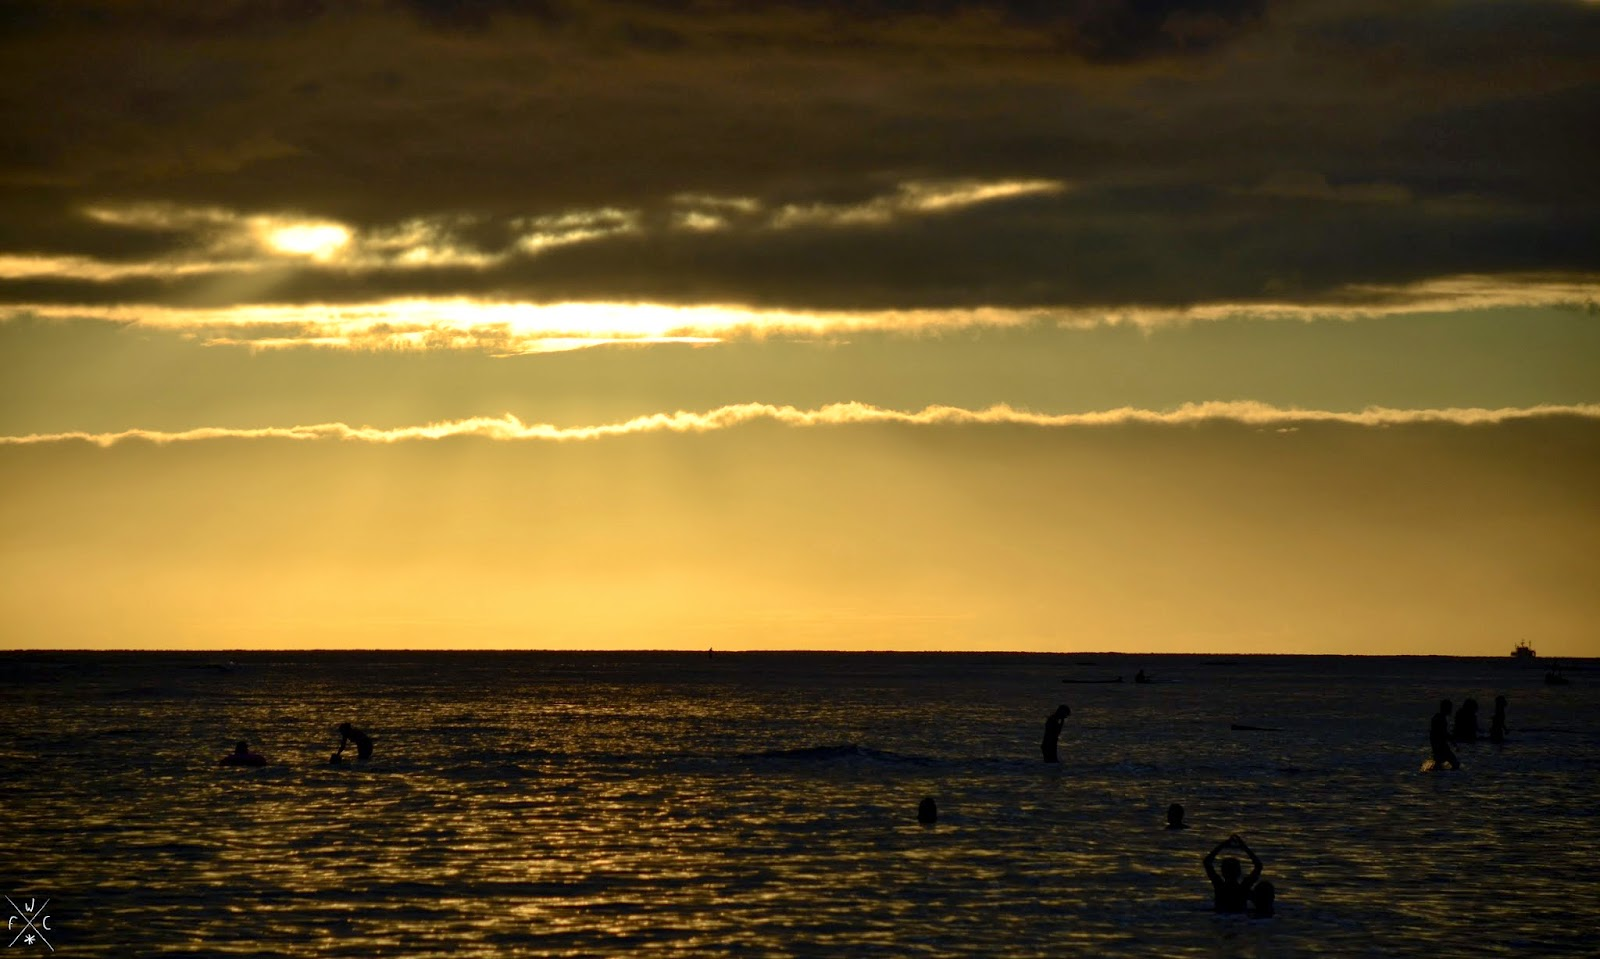 Sunset / Coucher du soleil - Waikiki Beach, Honolulu, Hawaii